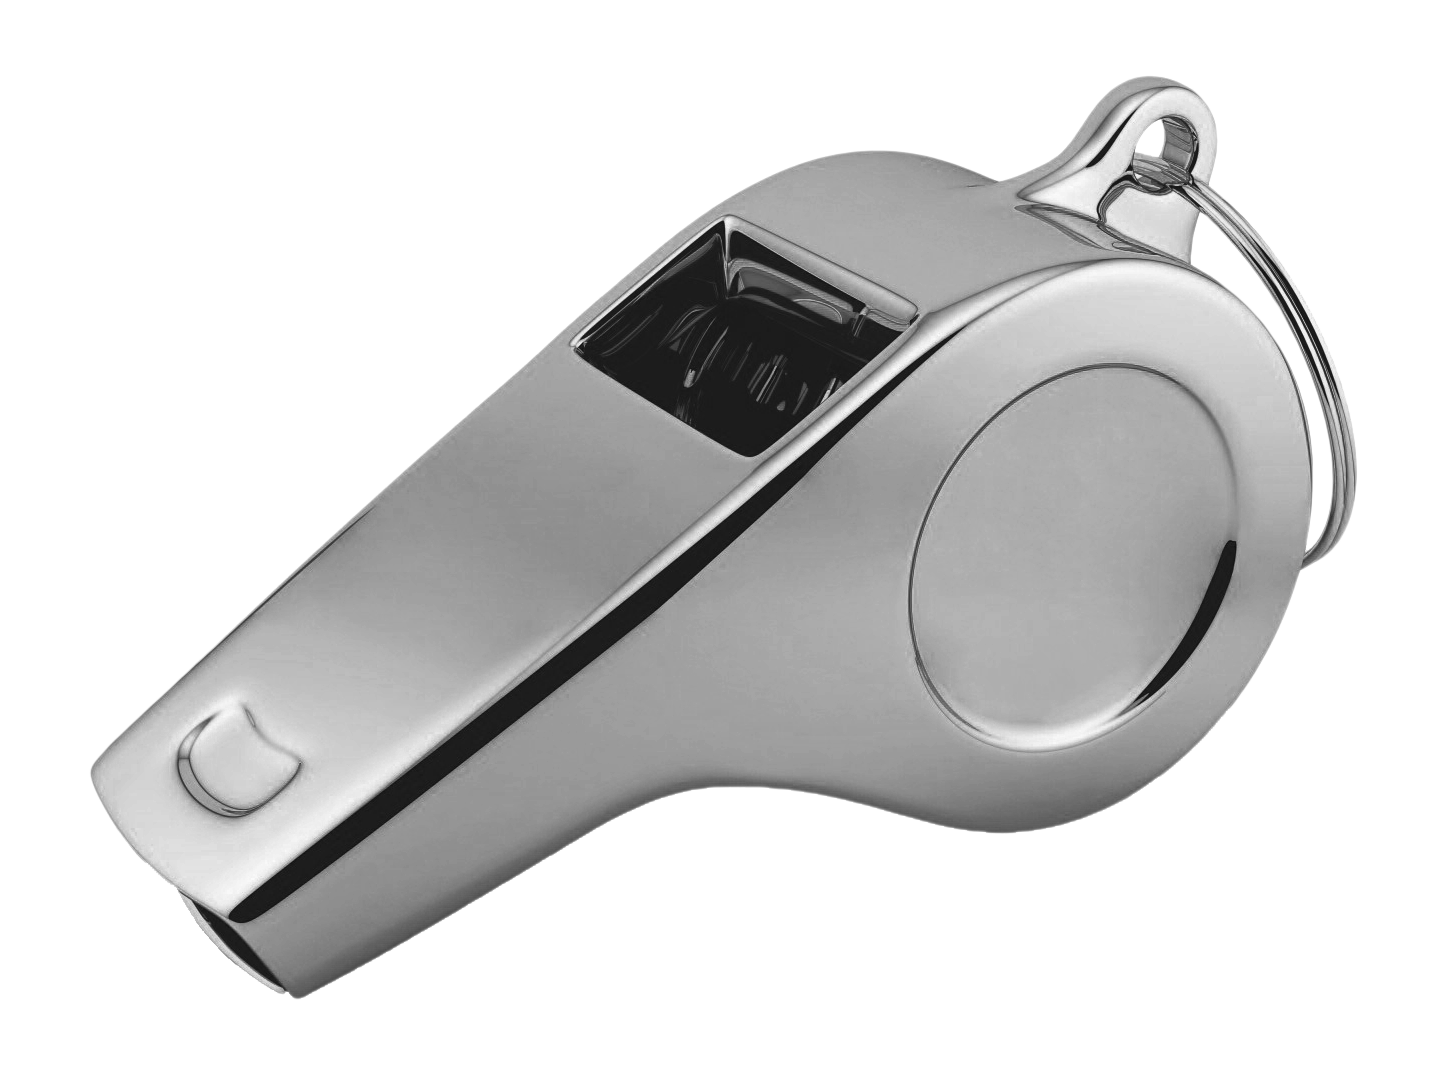 Png Whistle Hdpng.com 1442 - Whistle, Transparent background PNG HD thumbnail